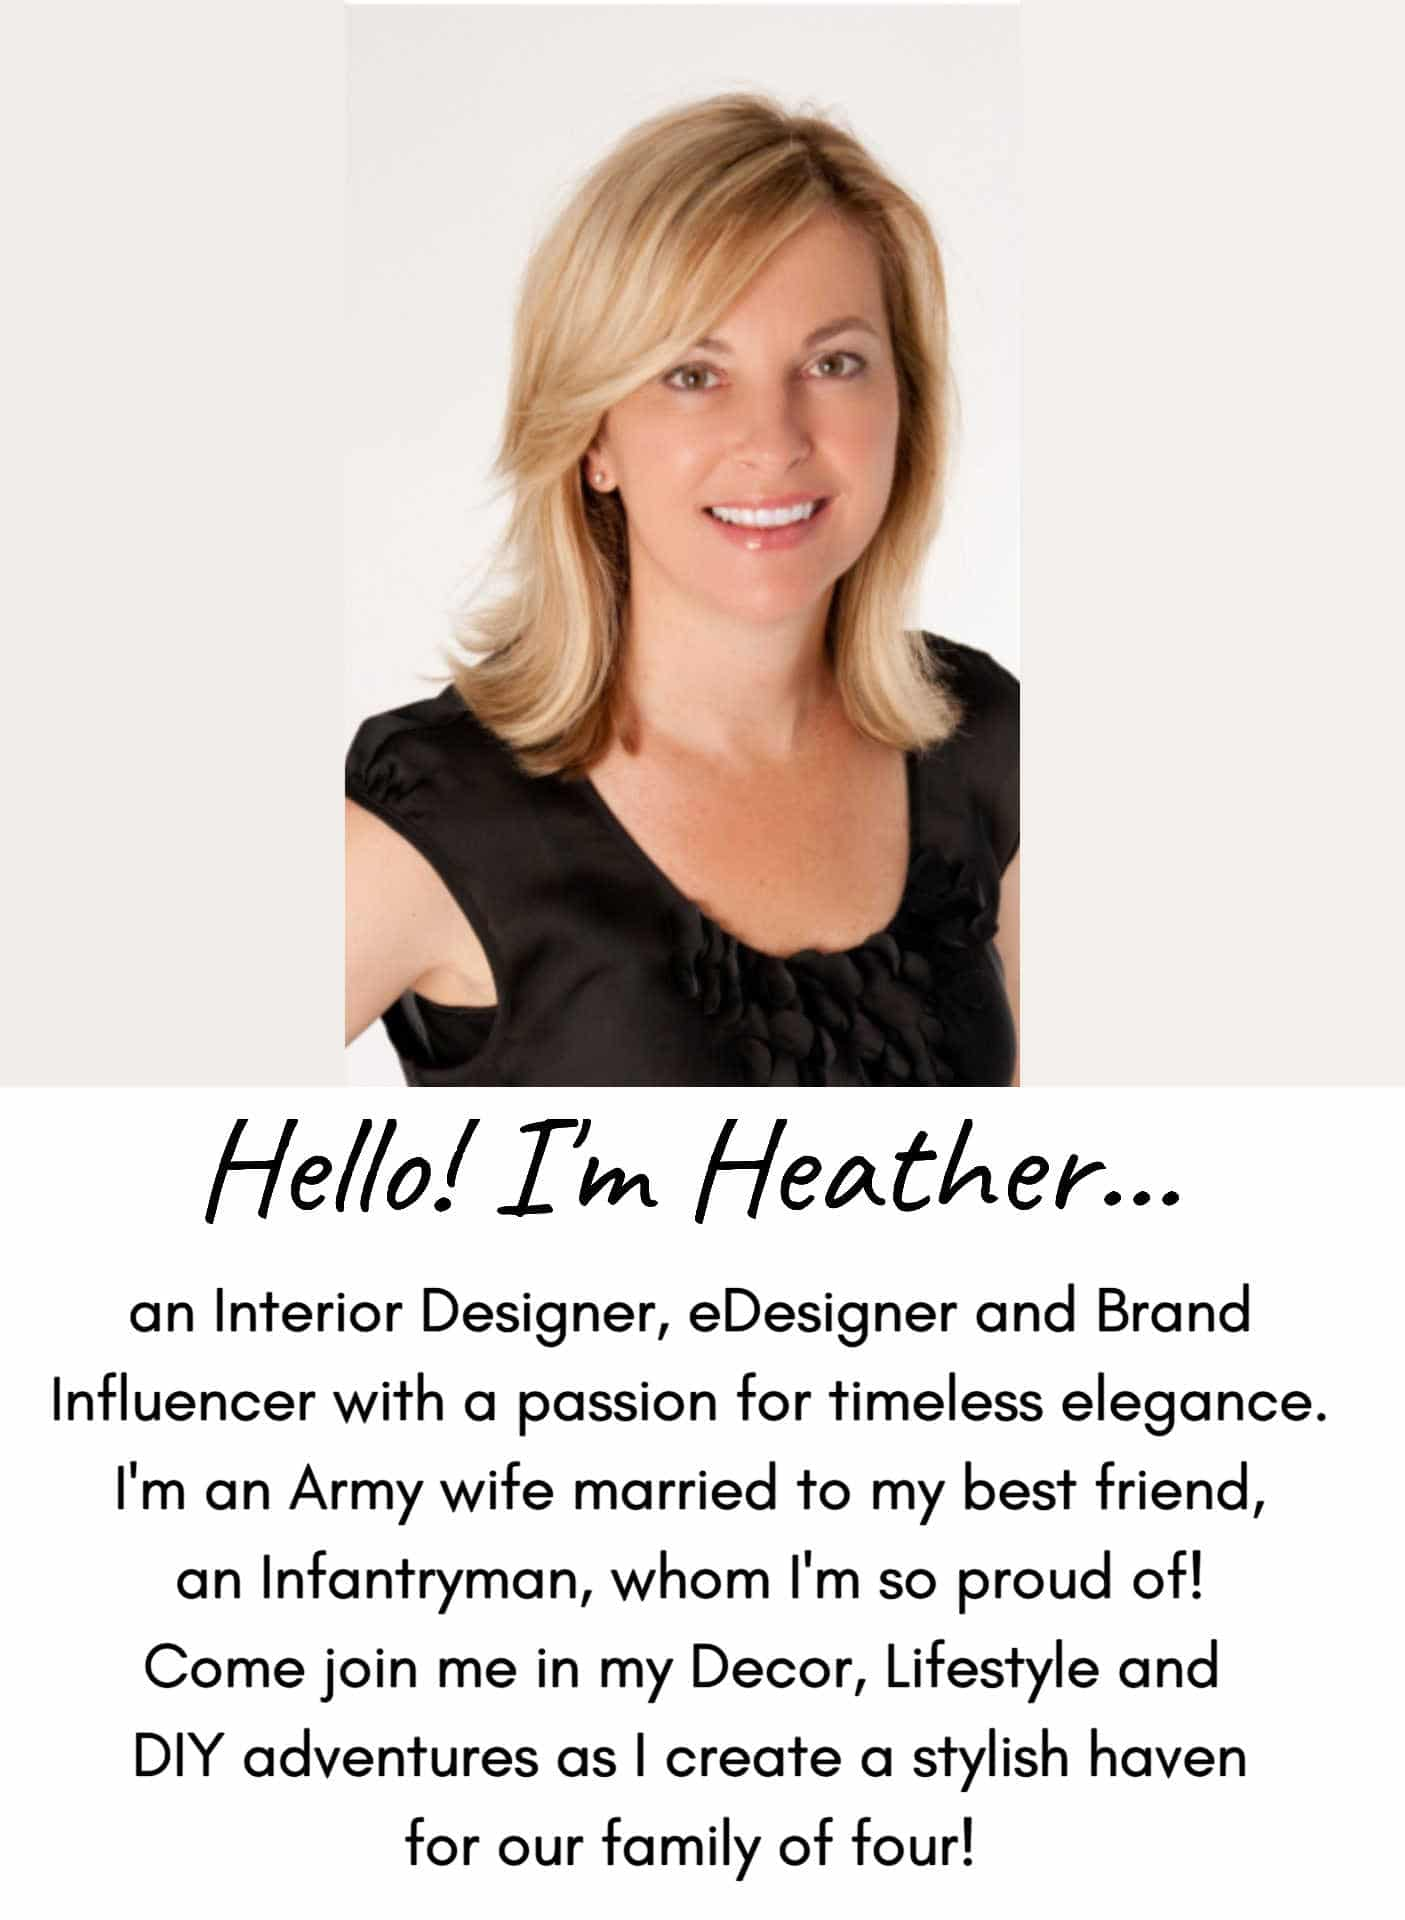 Hello! I'm Heather - Interior Designer and Influencer at SettingforFour.com! Join me in my DIY, Design and Lifestyle Adventures!